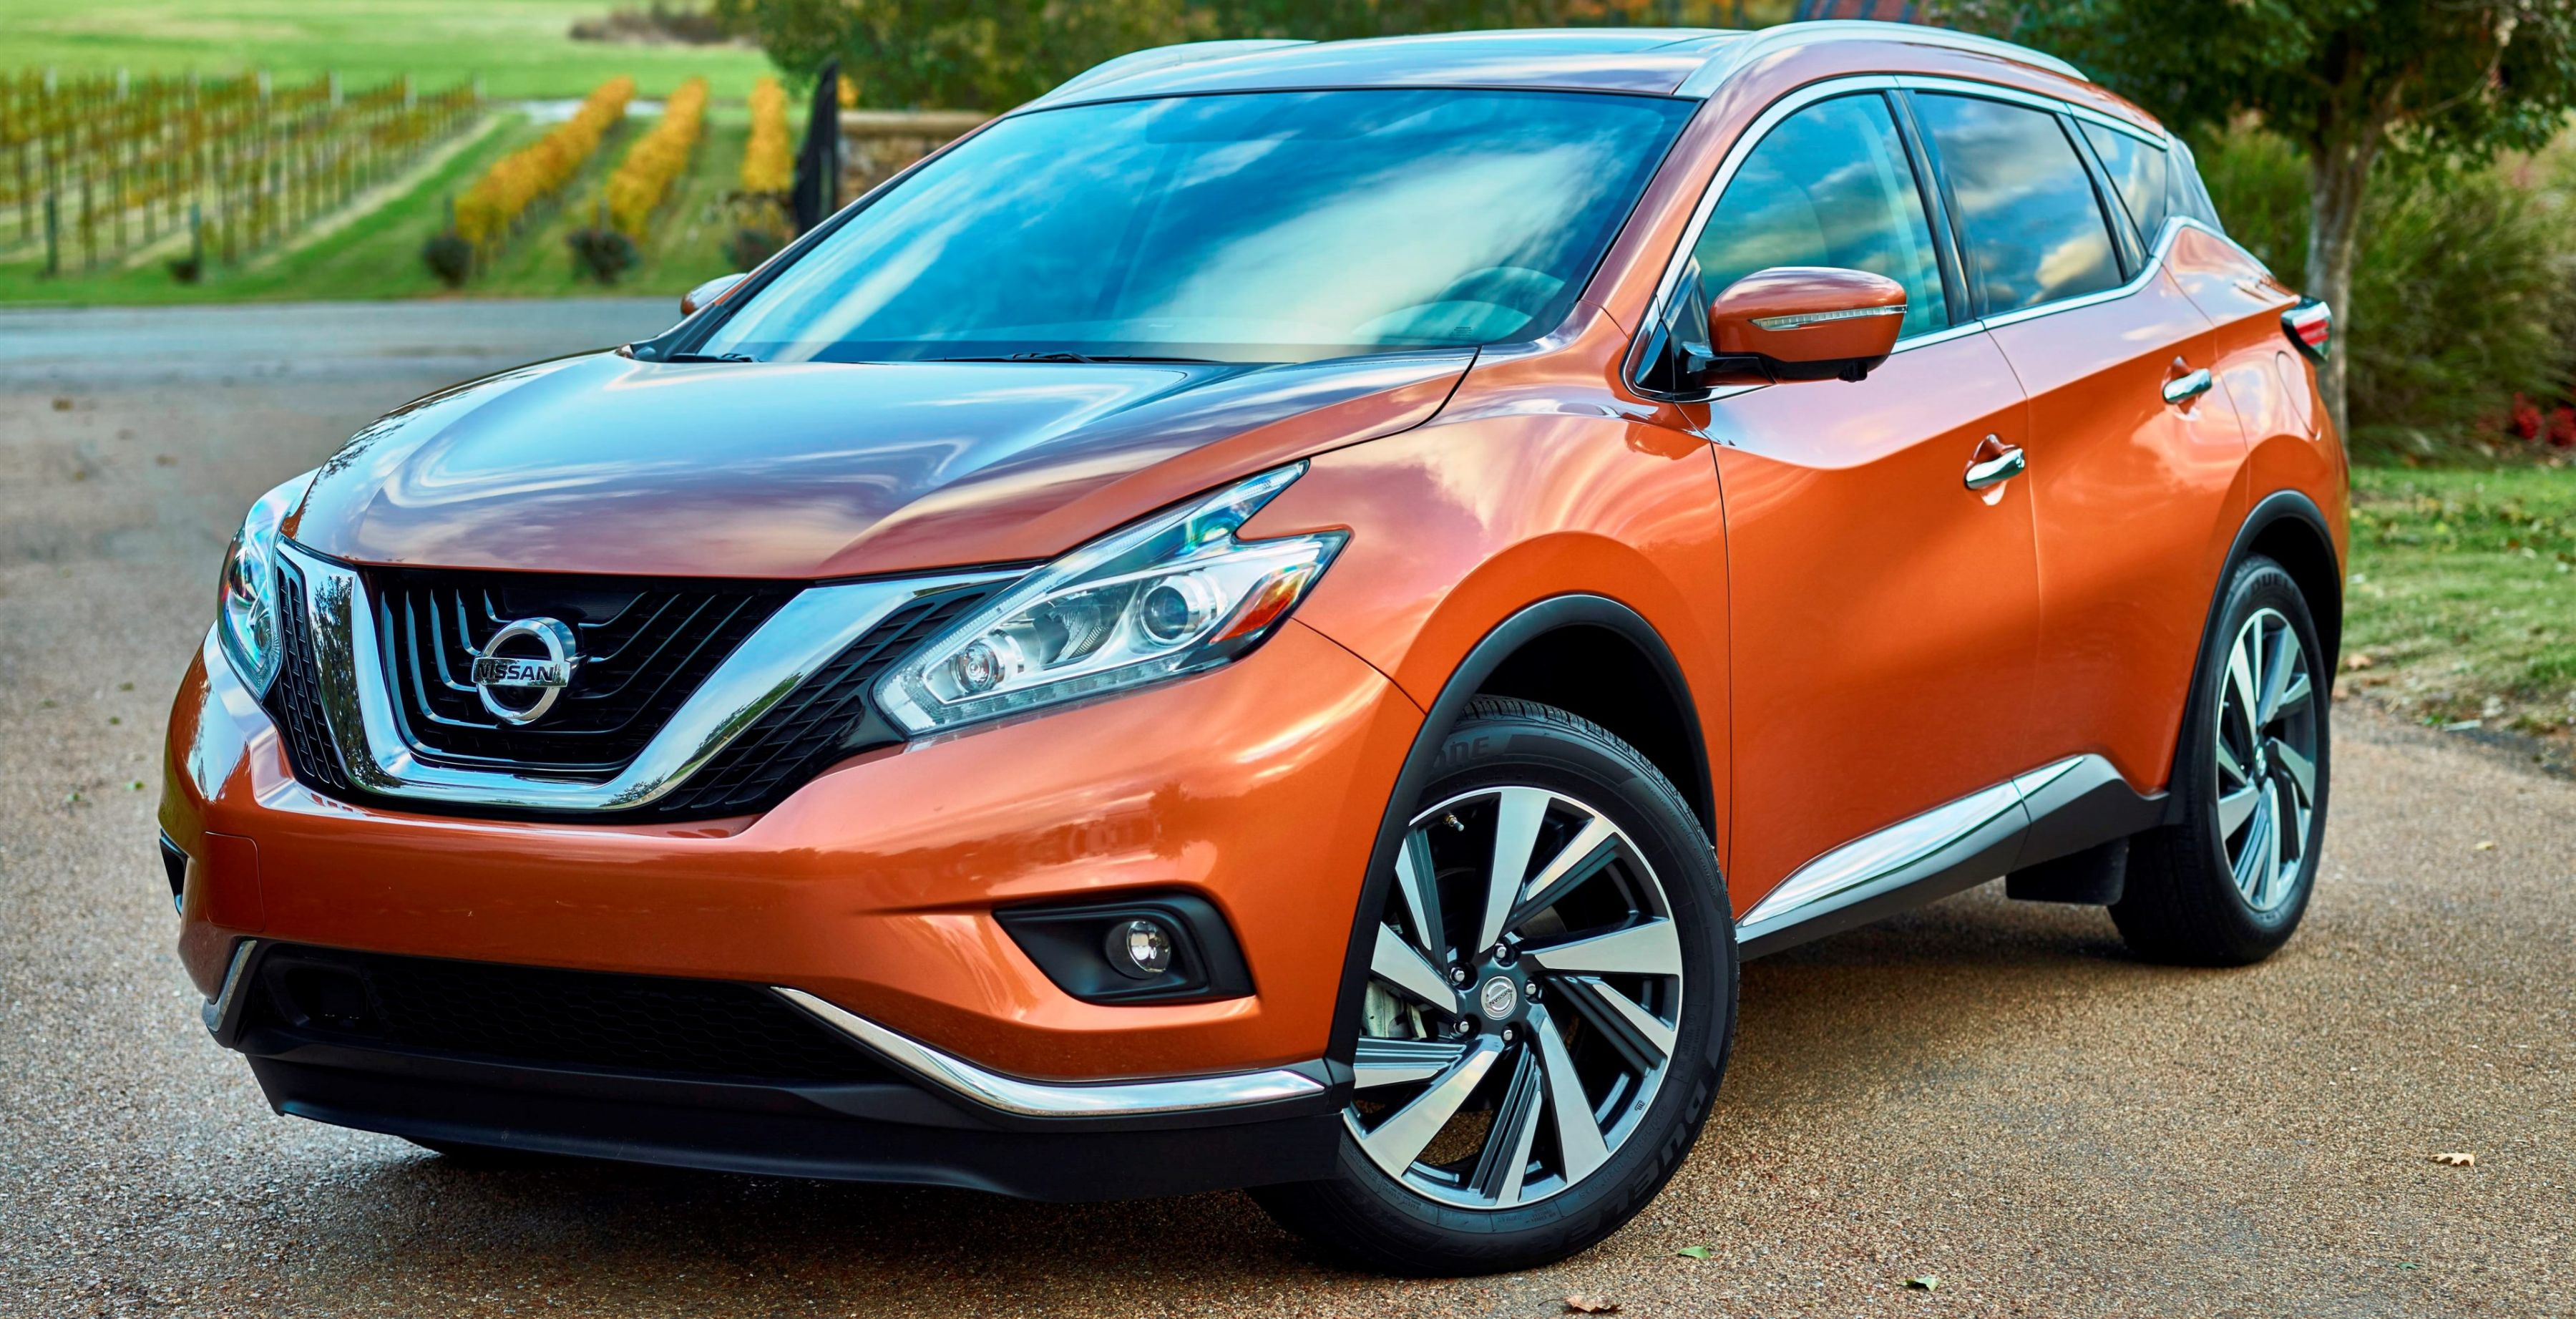 2015 Nissan Murano Pricing + COLORS and 60 New Photos